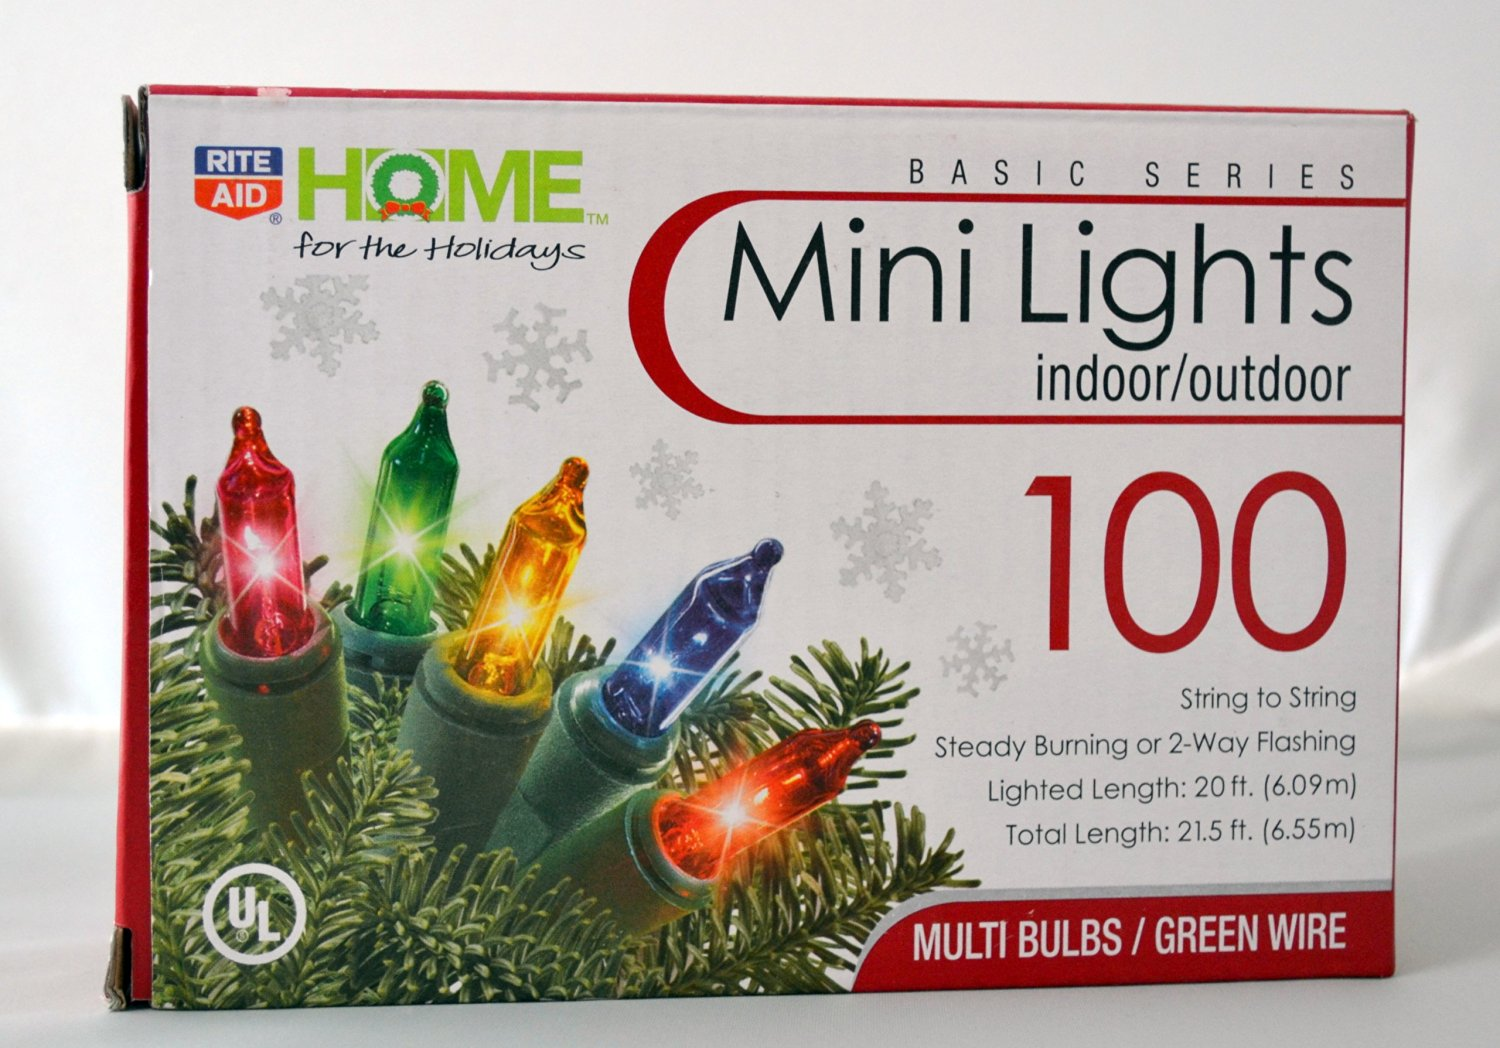 Rite Aid Home For The Holiday 100 Color Mini Lights Indoor/outdoor Nice Look